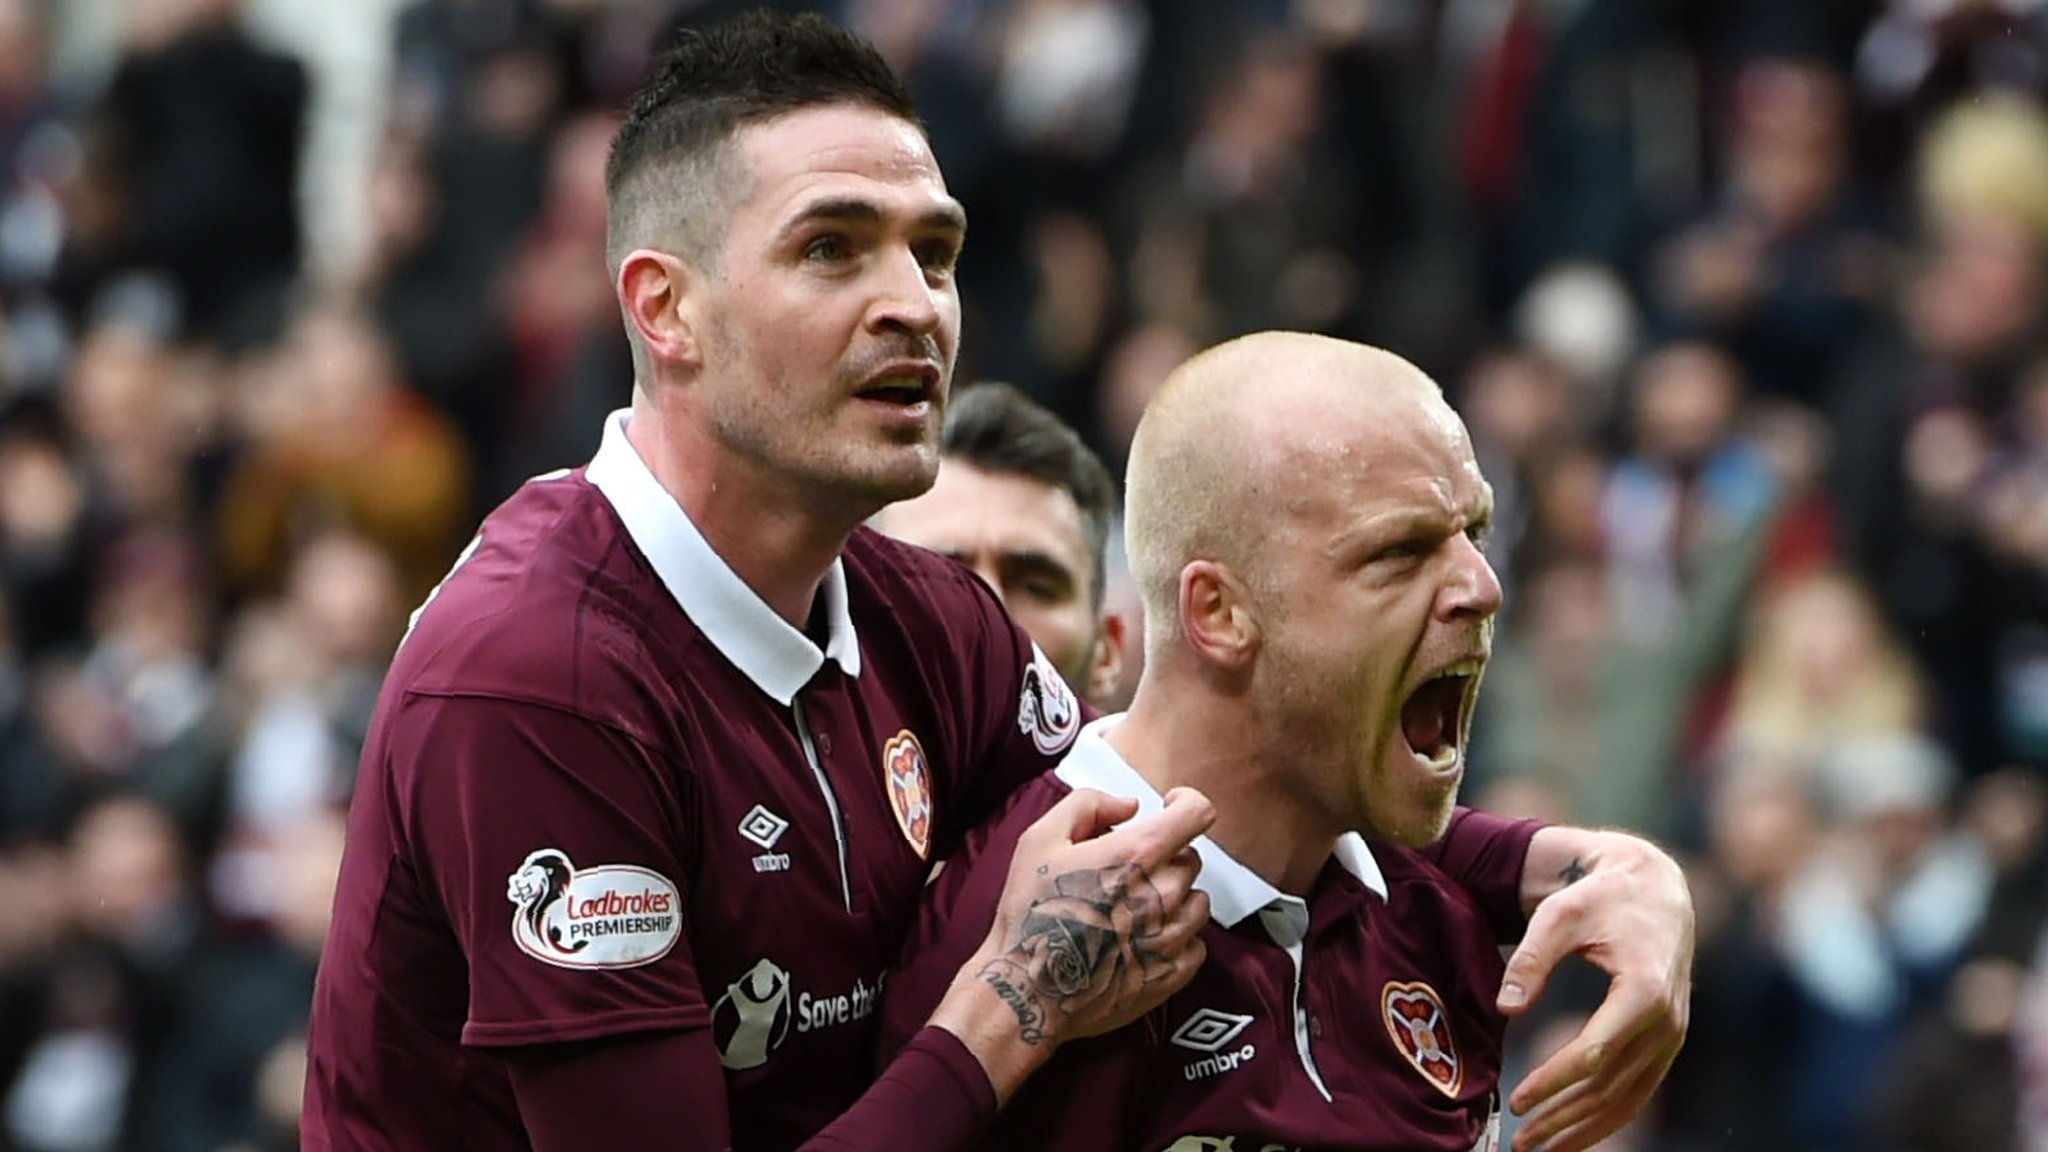 'Lafferty's told me before he's leaving, then turned up a month later' - Naismith